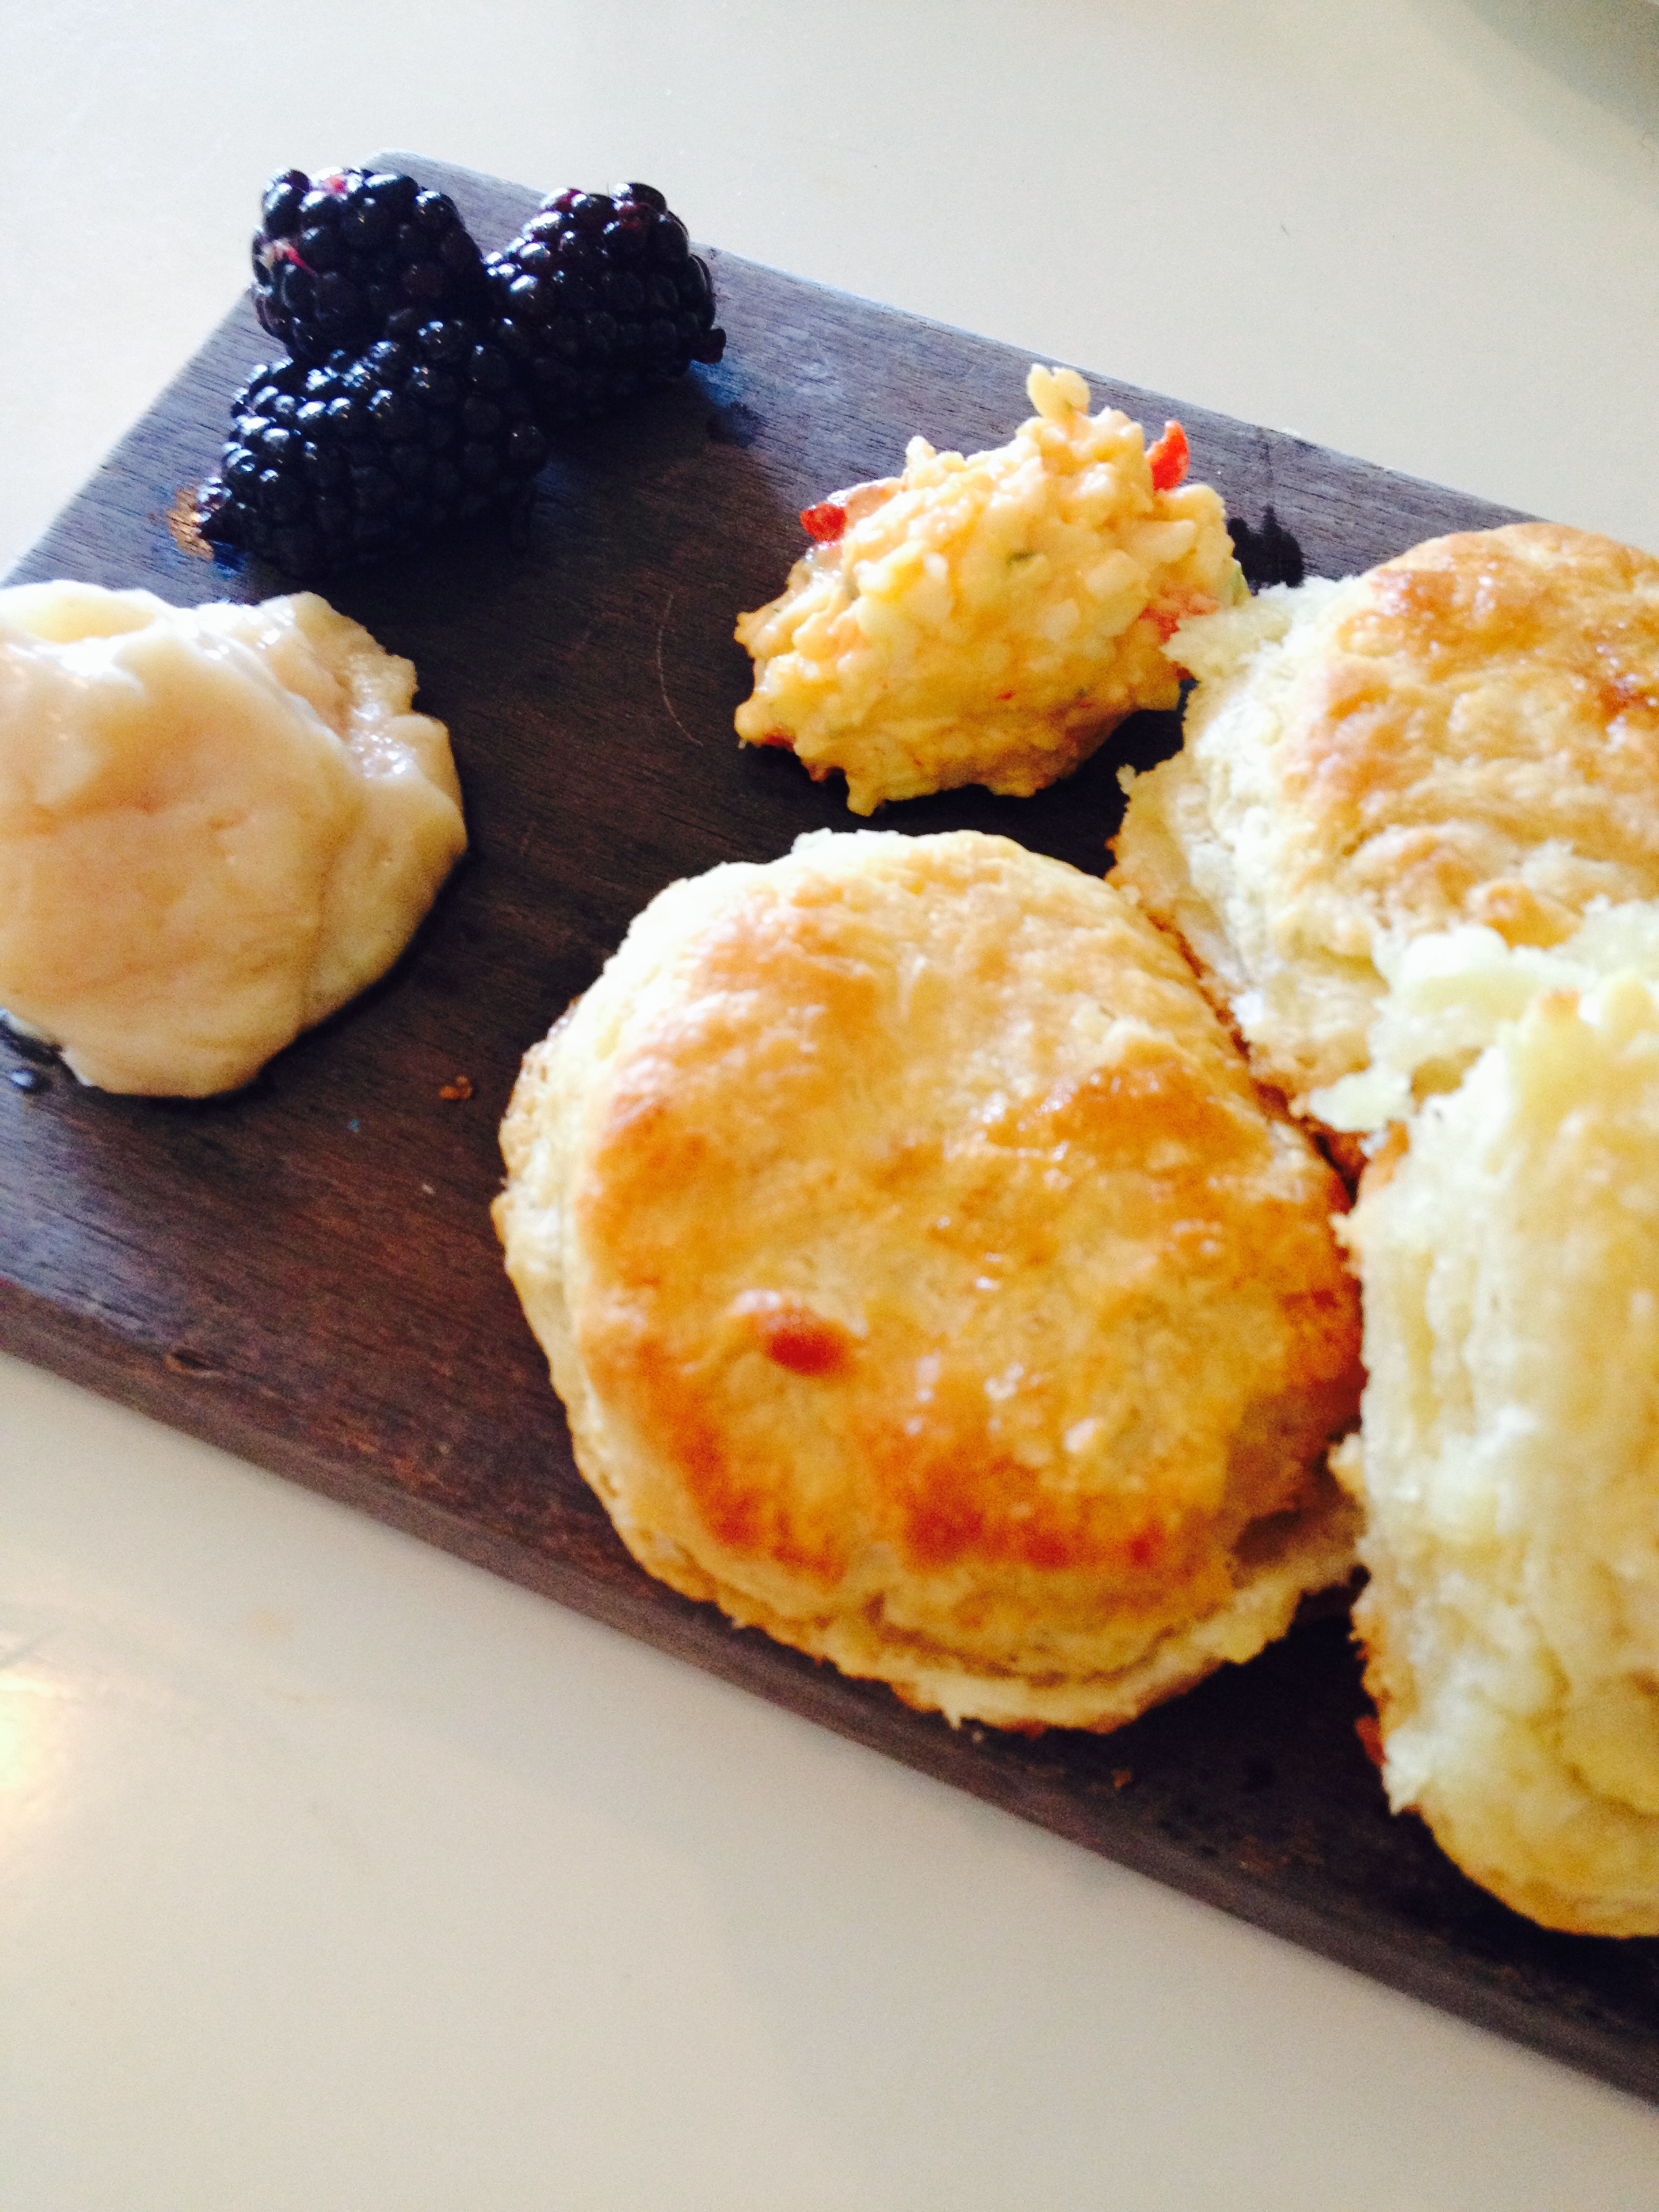 Butter biscuits with pimento cheese, honey butter, and blackberries.